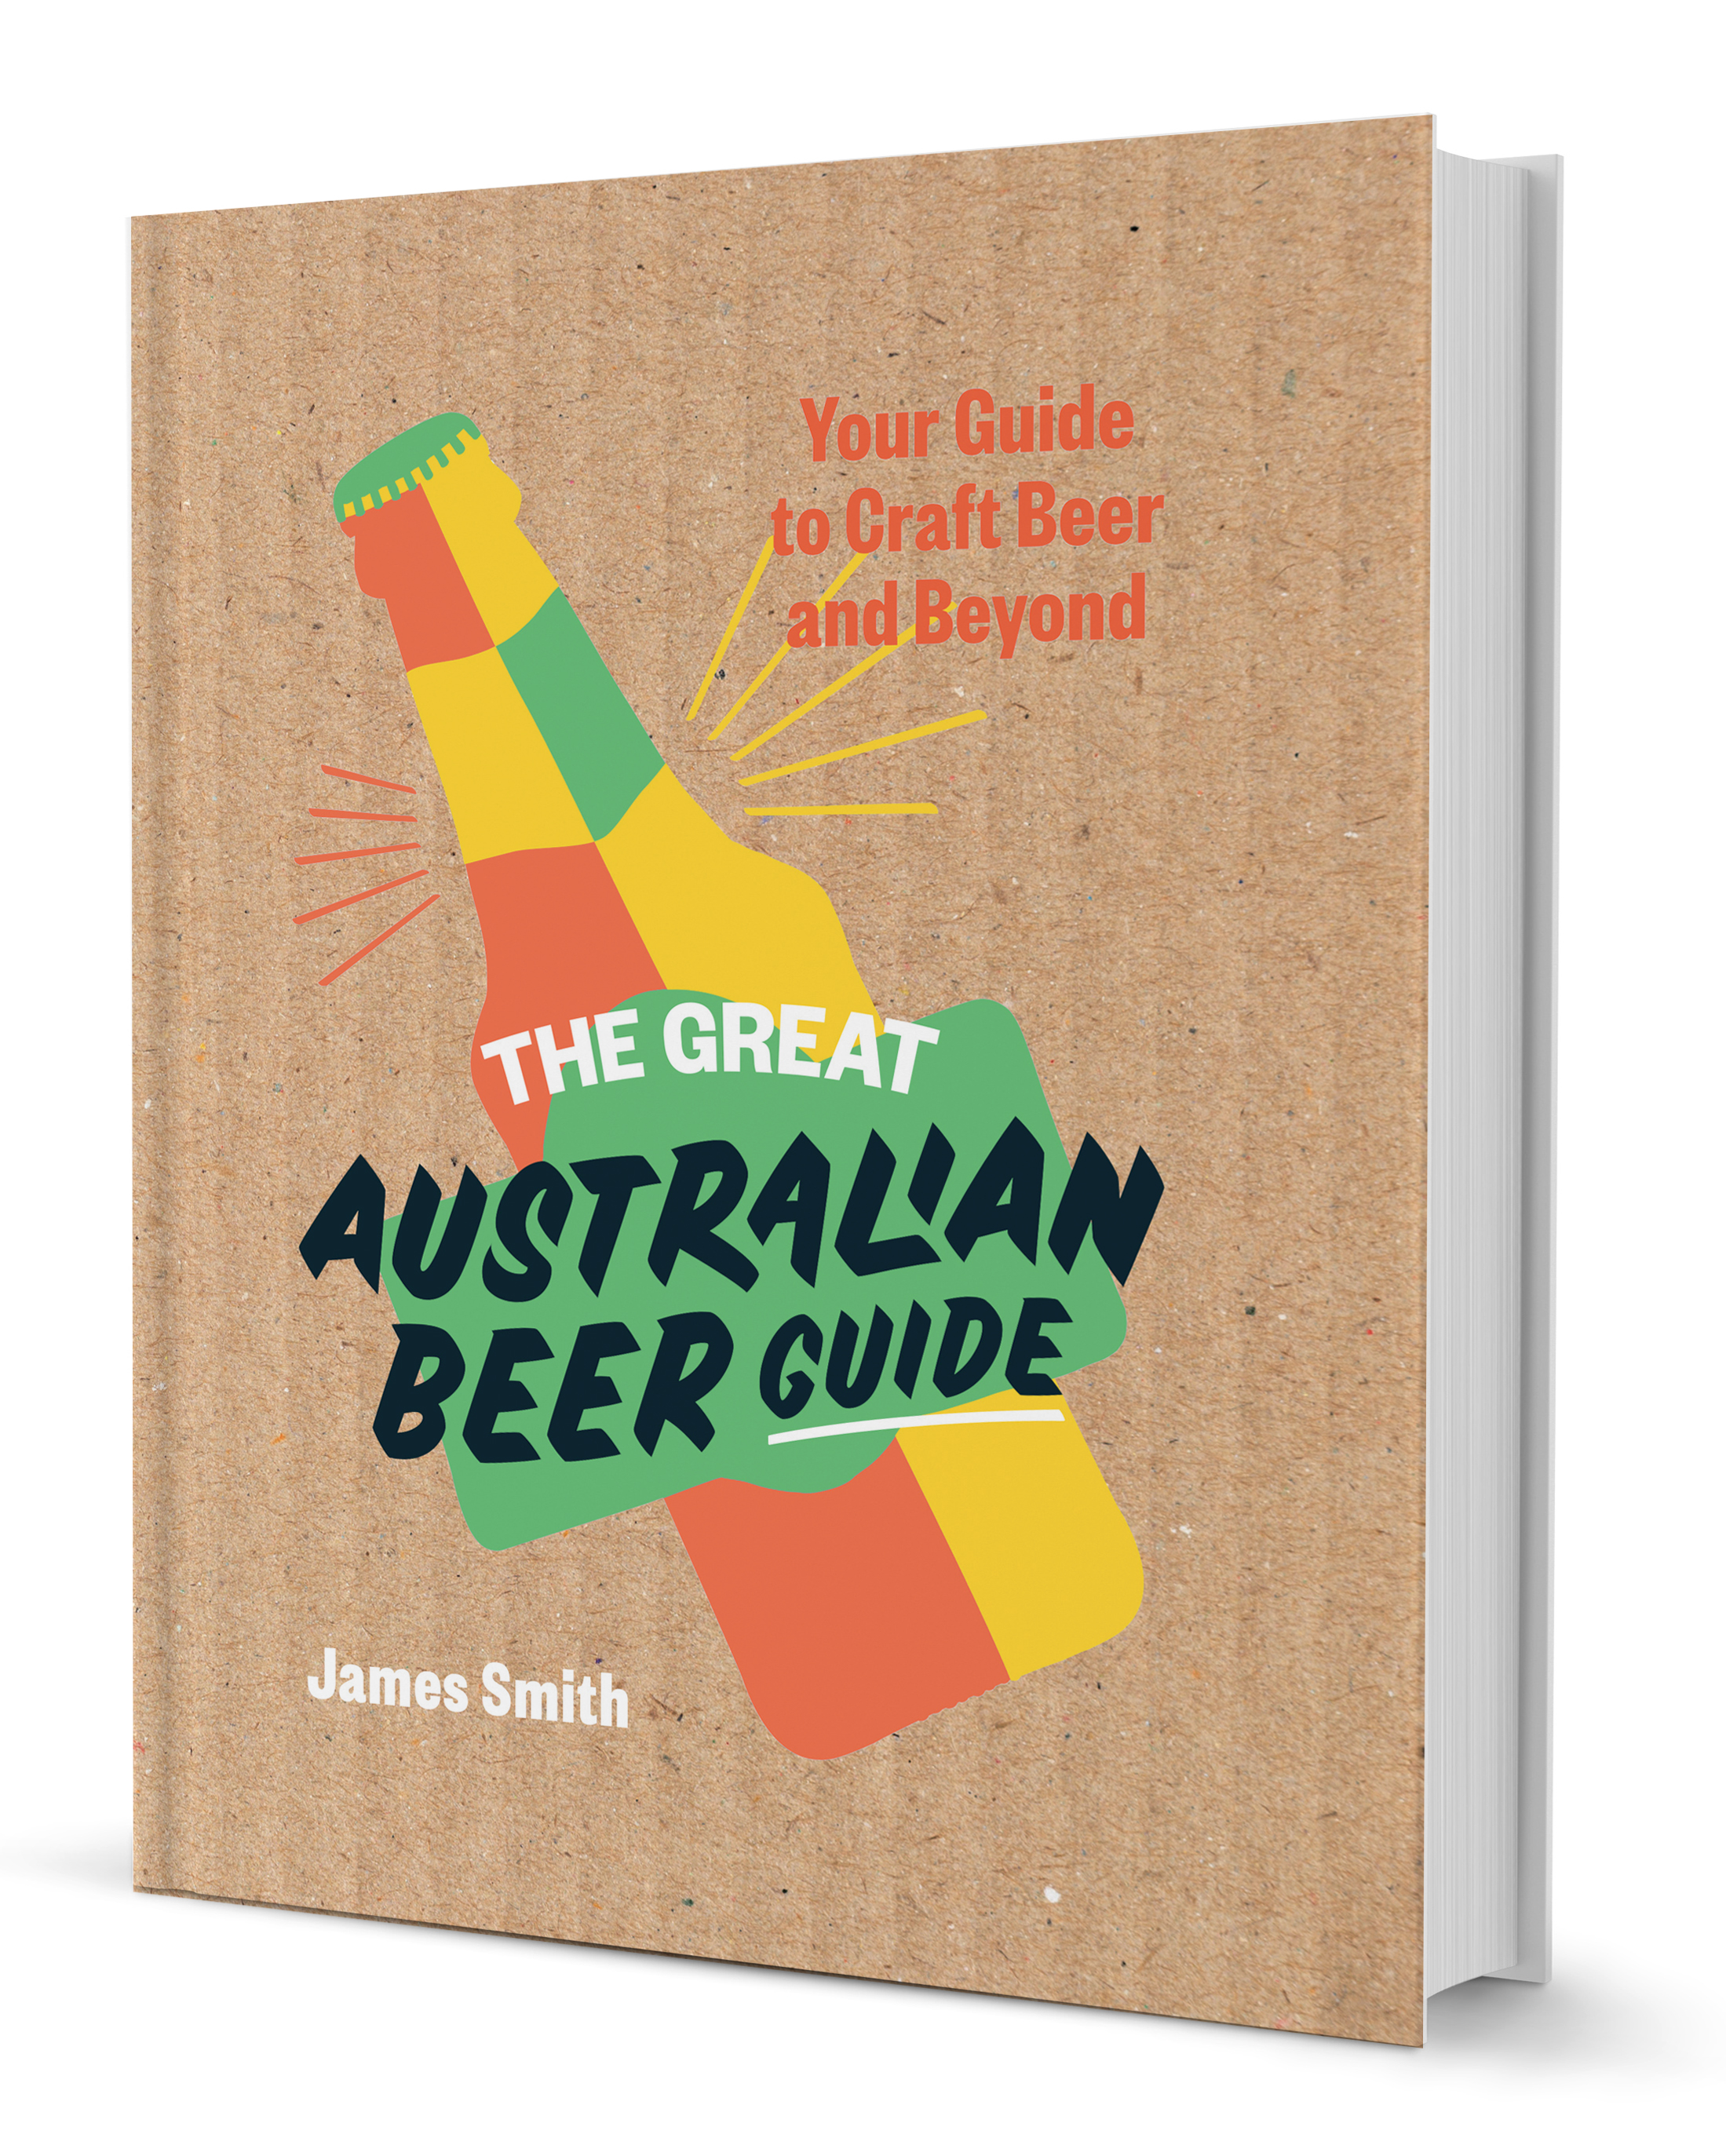 BeerGuideCover